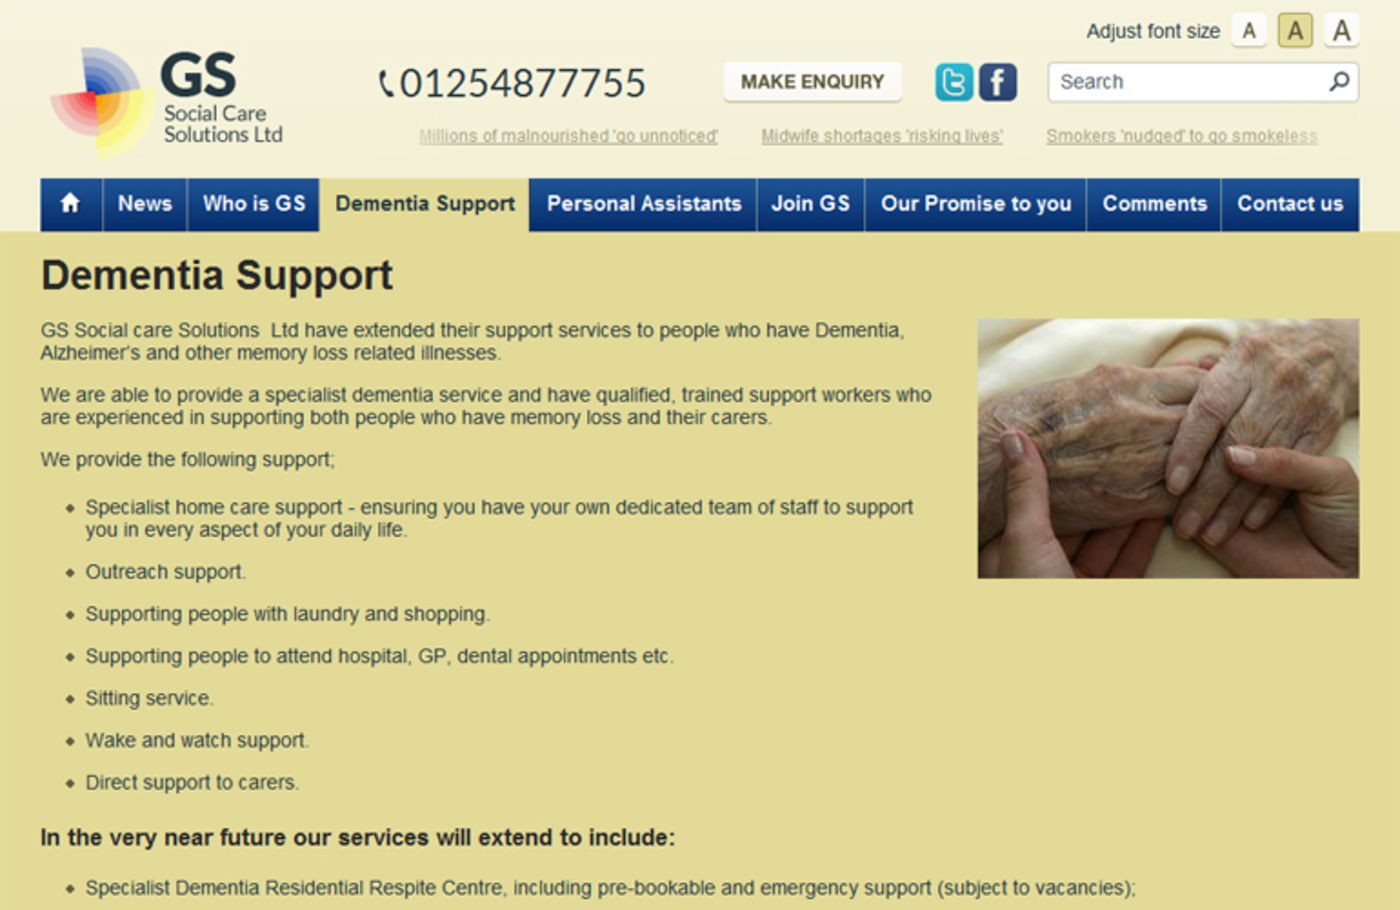 GS Social Care Solutions Ltd Regular page